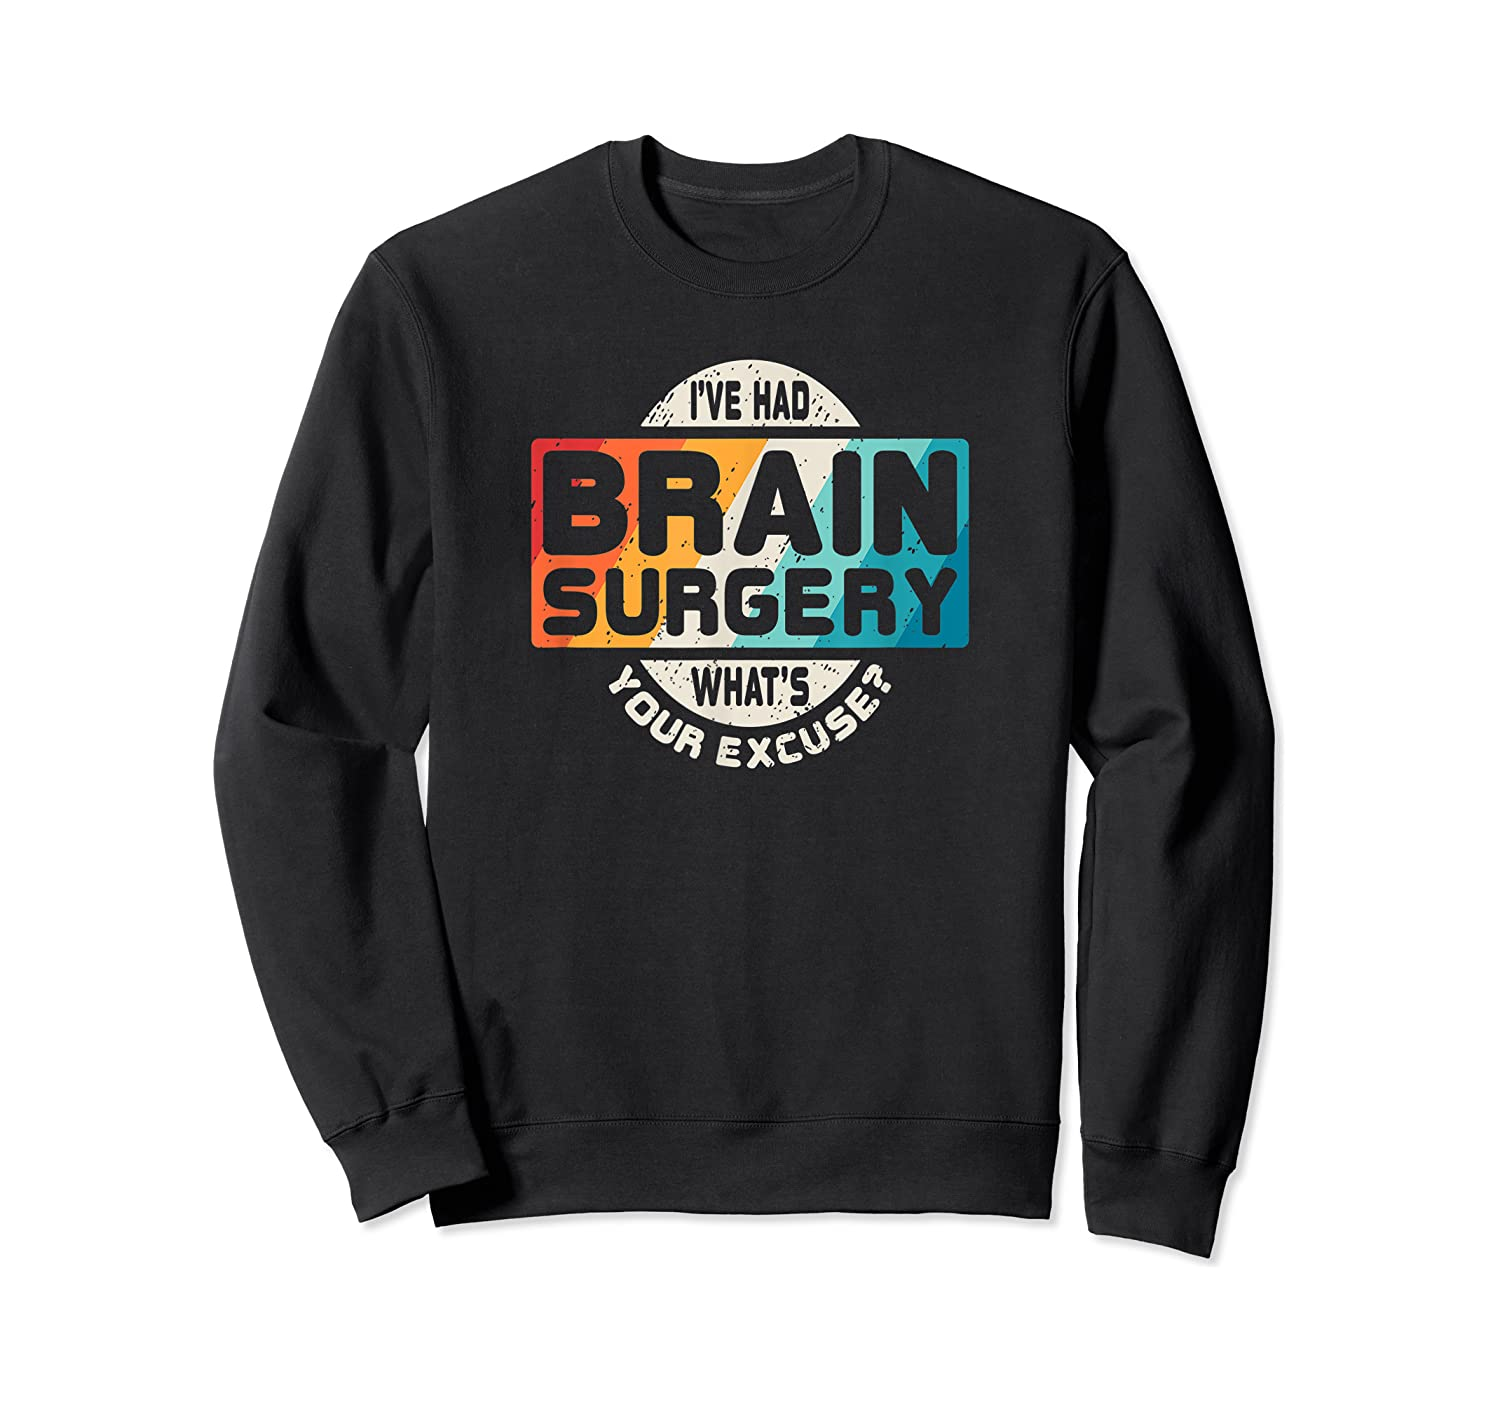 Brain Surgery Shirt Survivor Post Cancer Tumor Recovery Gift Crewneck Sweater